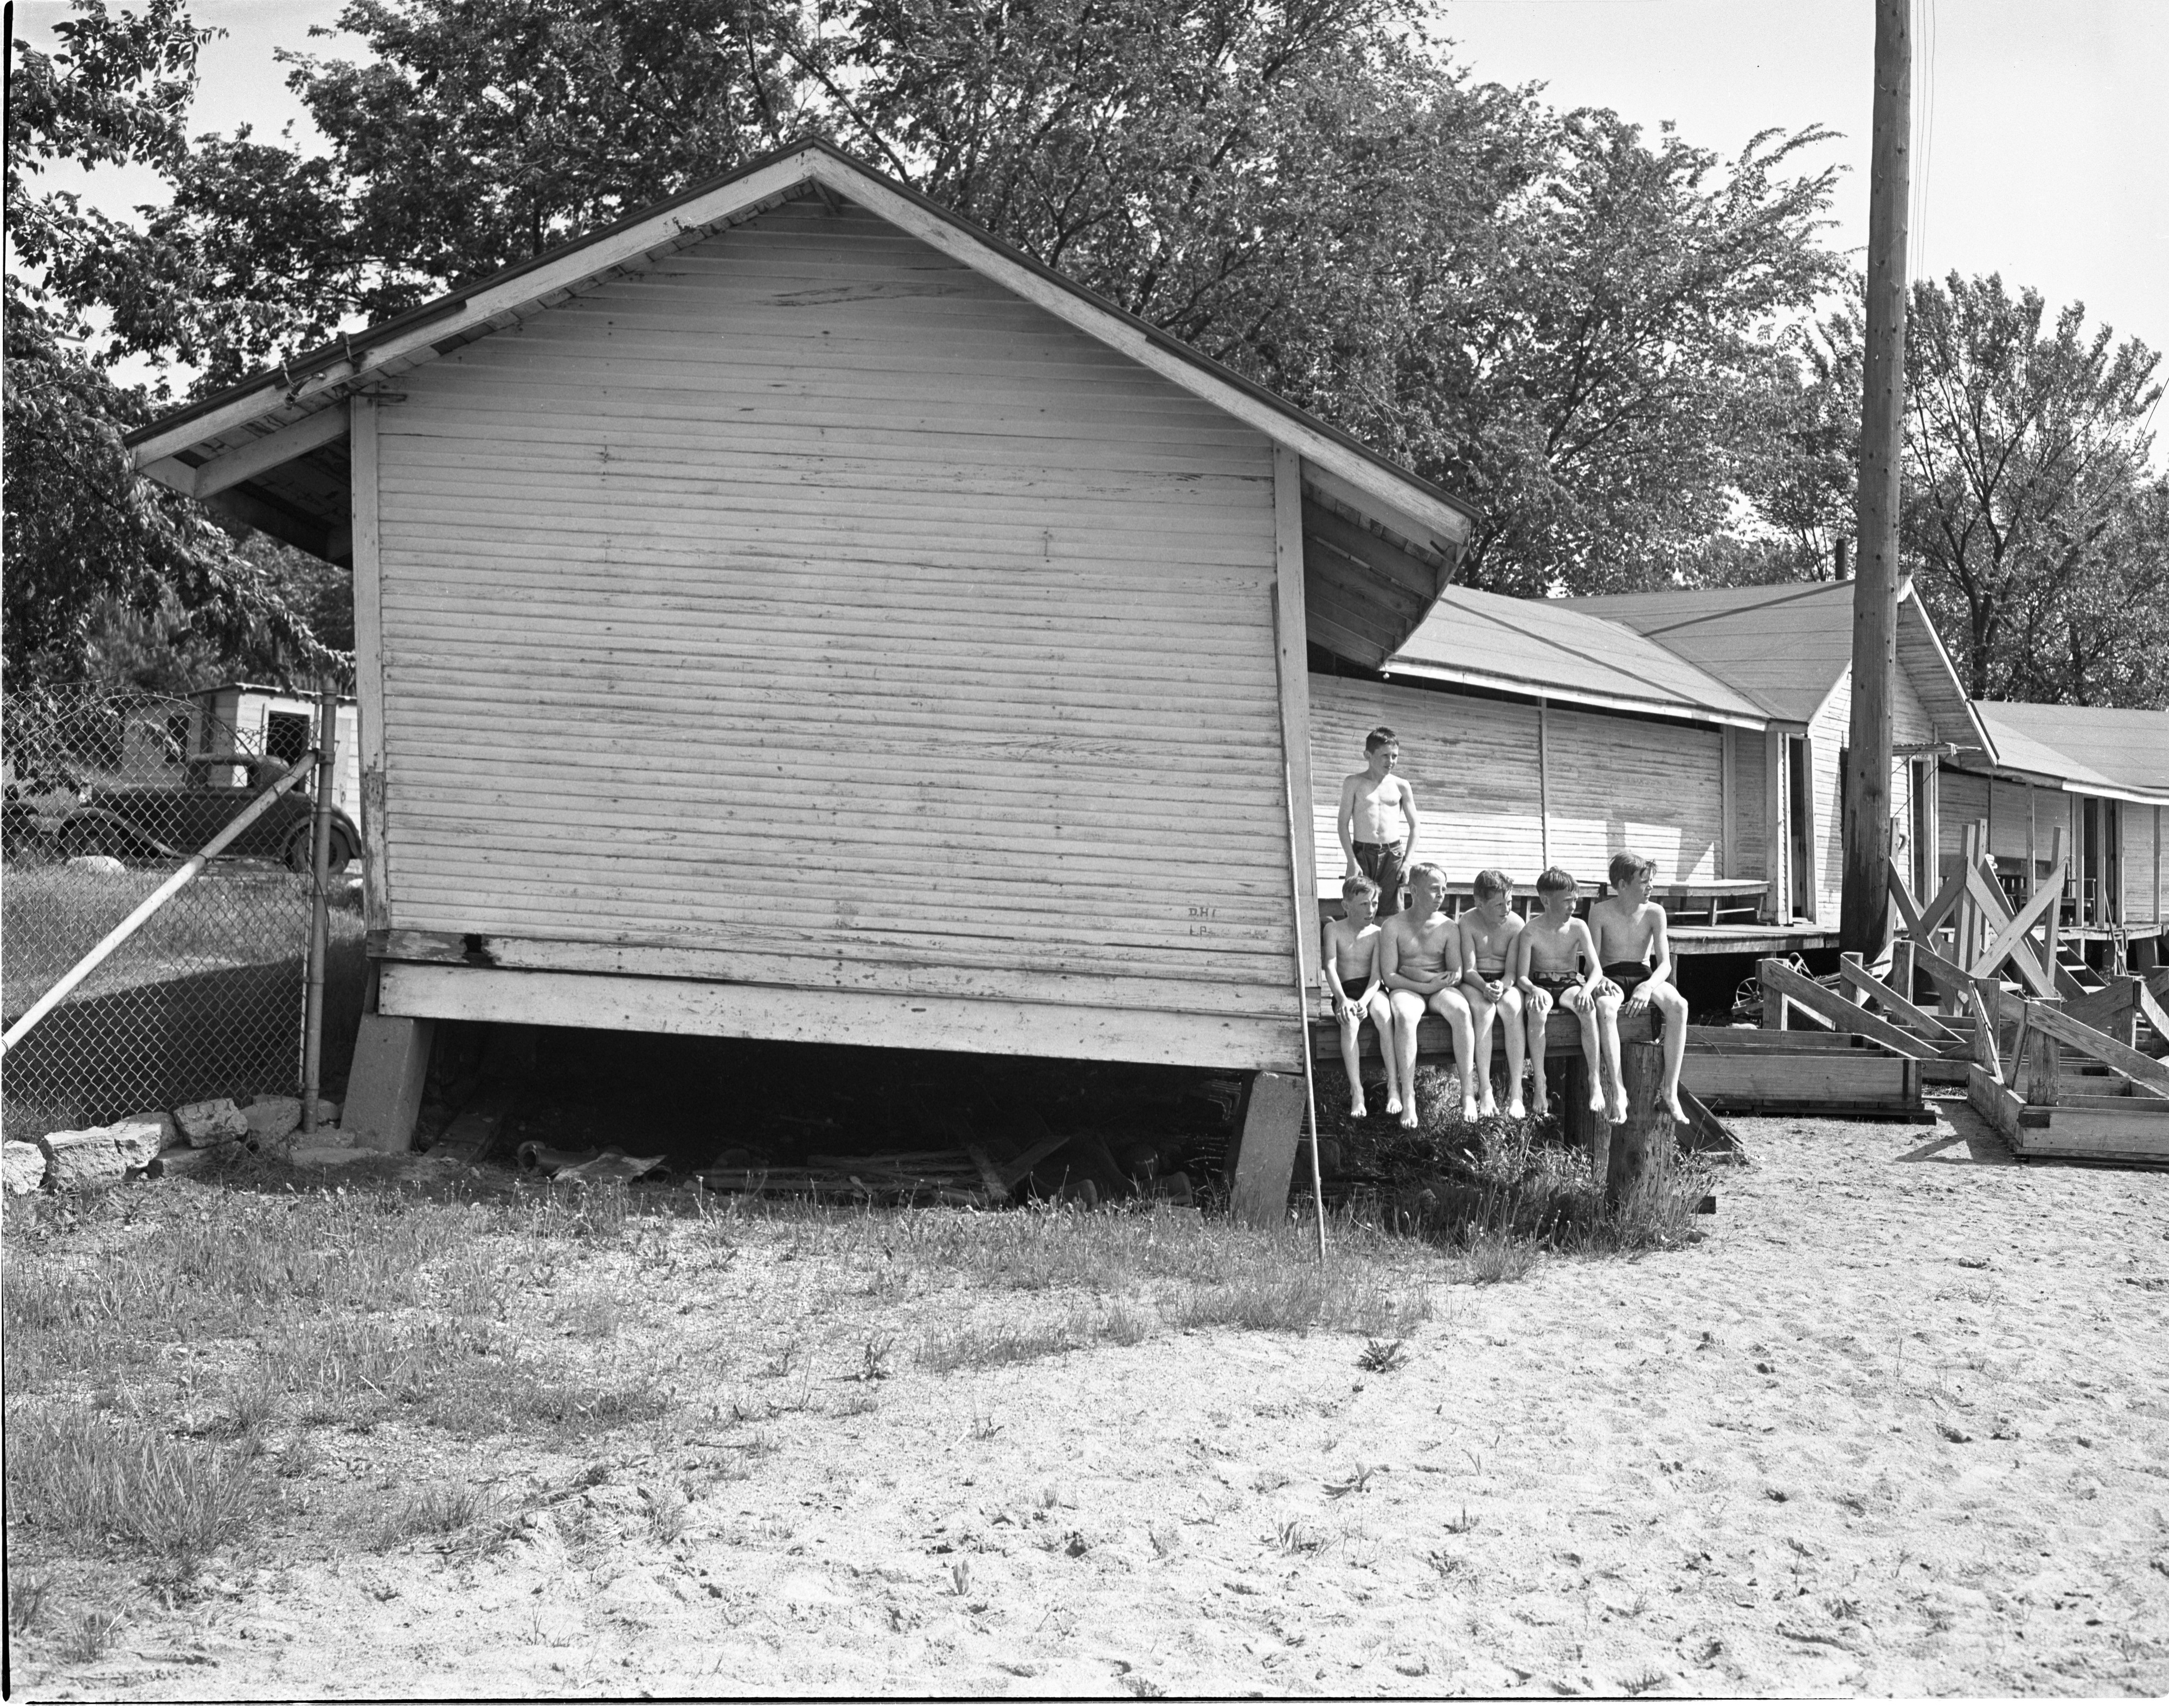 Young Swimmers Relax Outside The Dilapidated Bathhouse At Ann Arbor Municipal Beach, June 1940 image